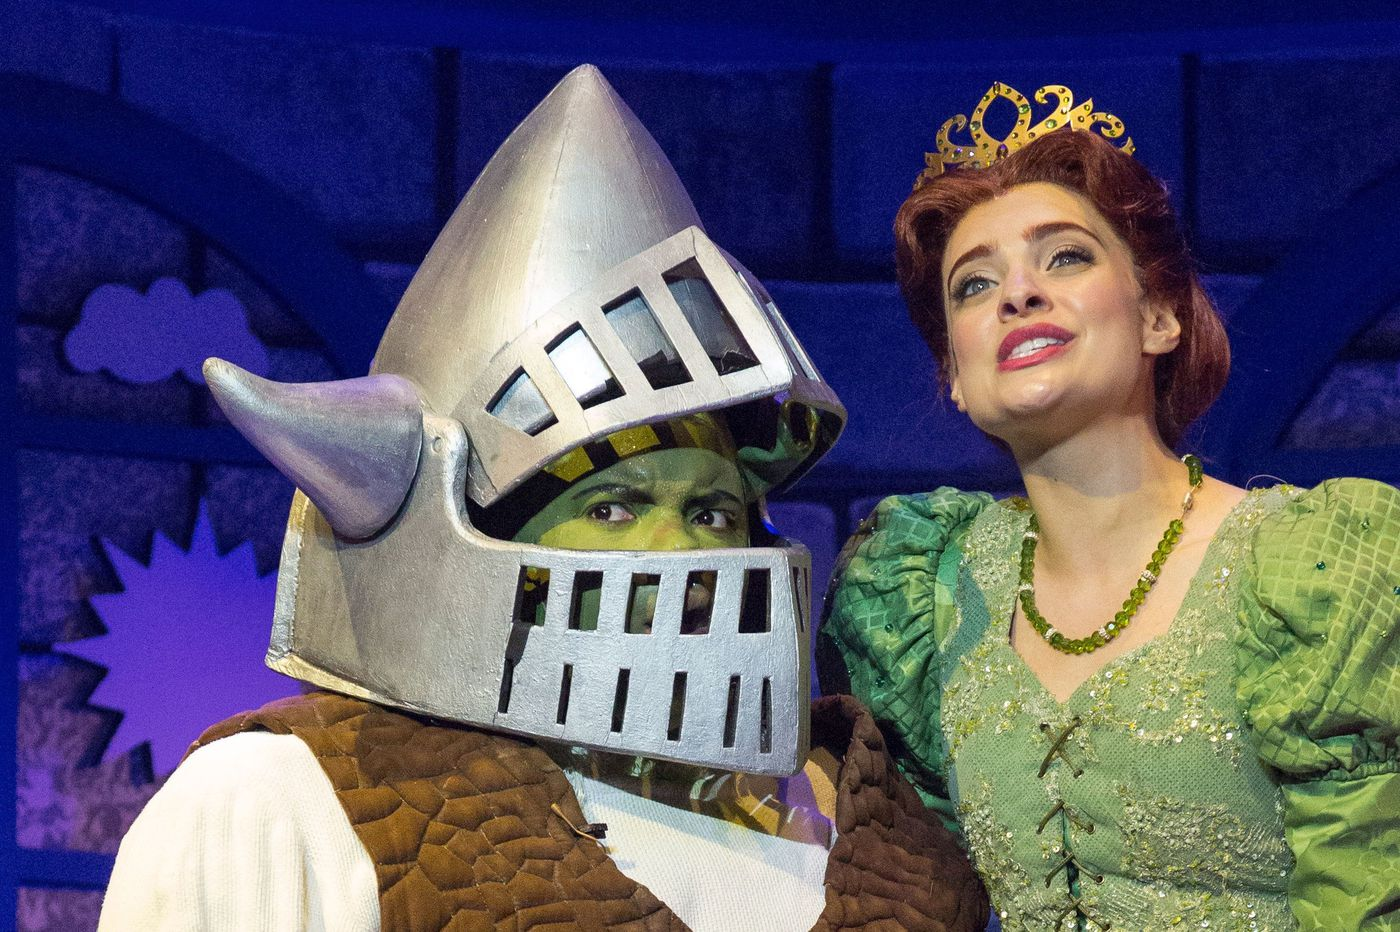 'Shrek The Musical' at Walnut Street Theatre: Right-sized fun for the family